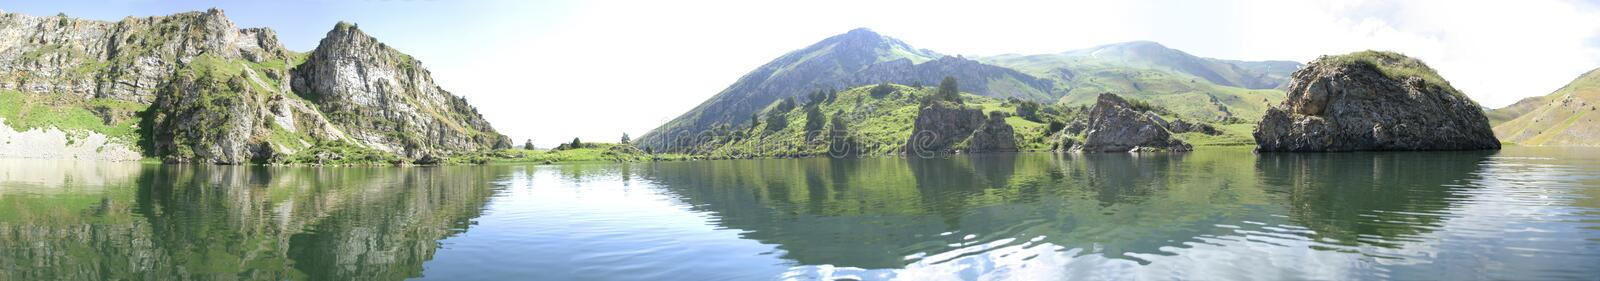 The lake in mountains, panorama 180 royalty free stock images